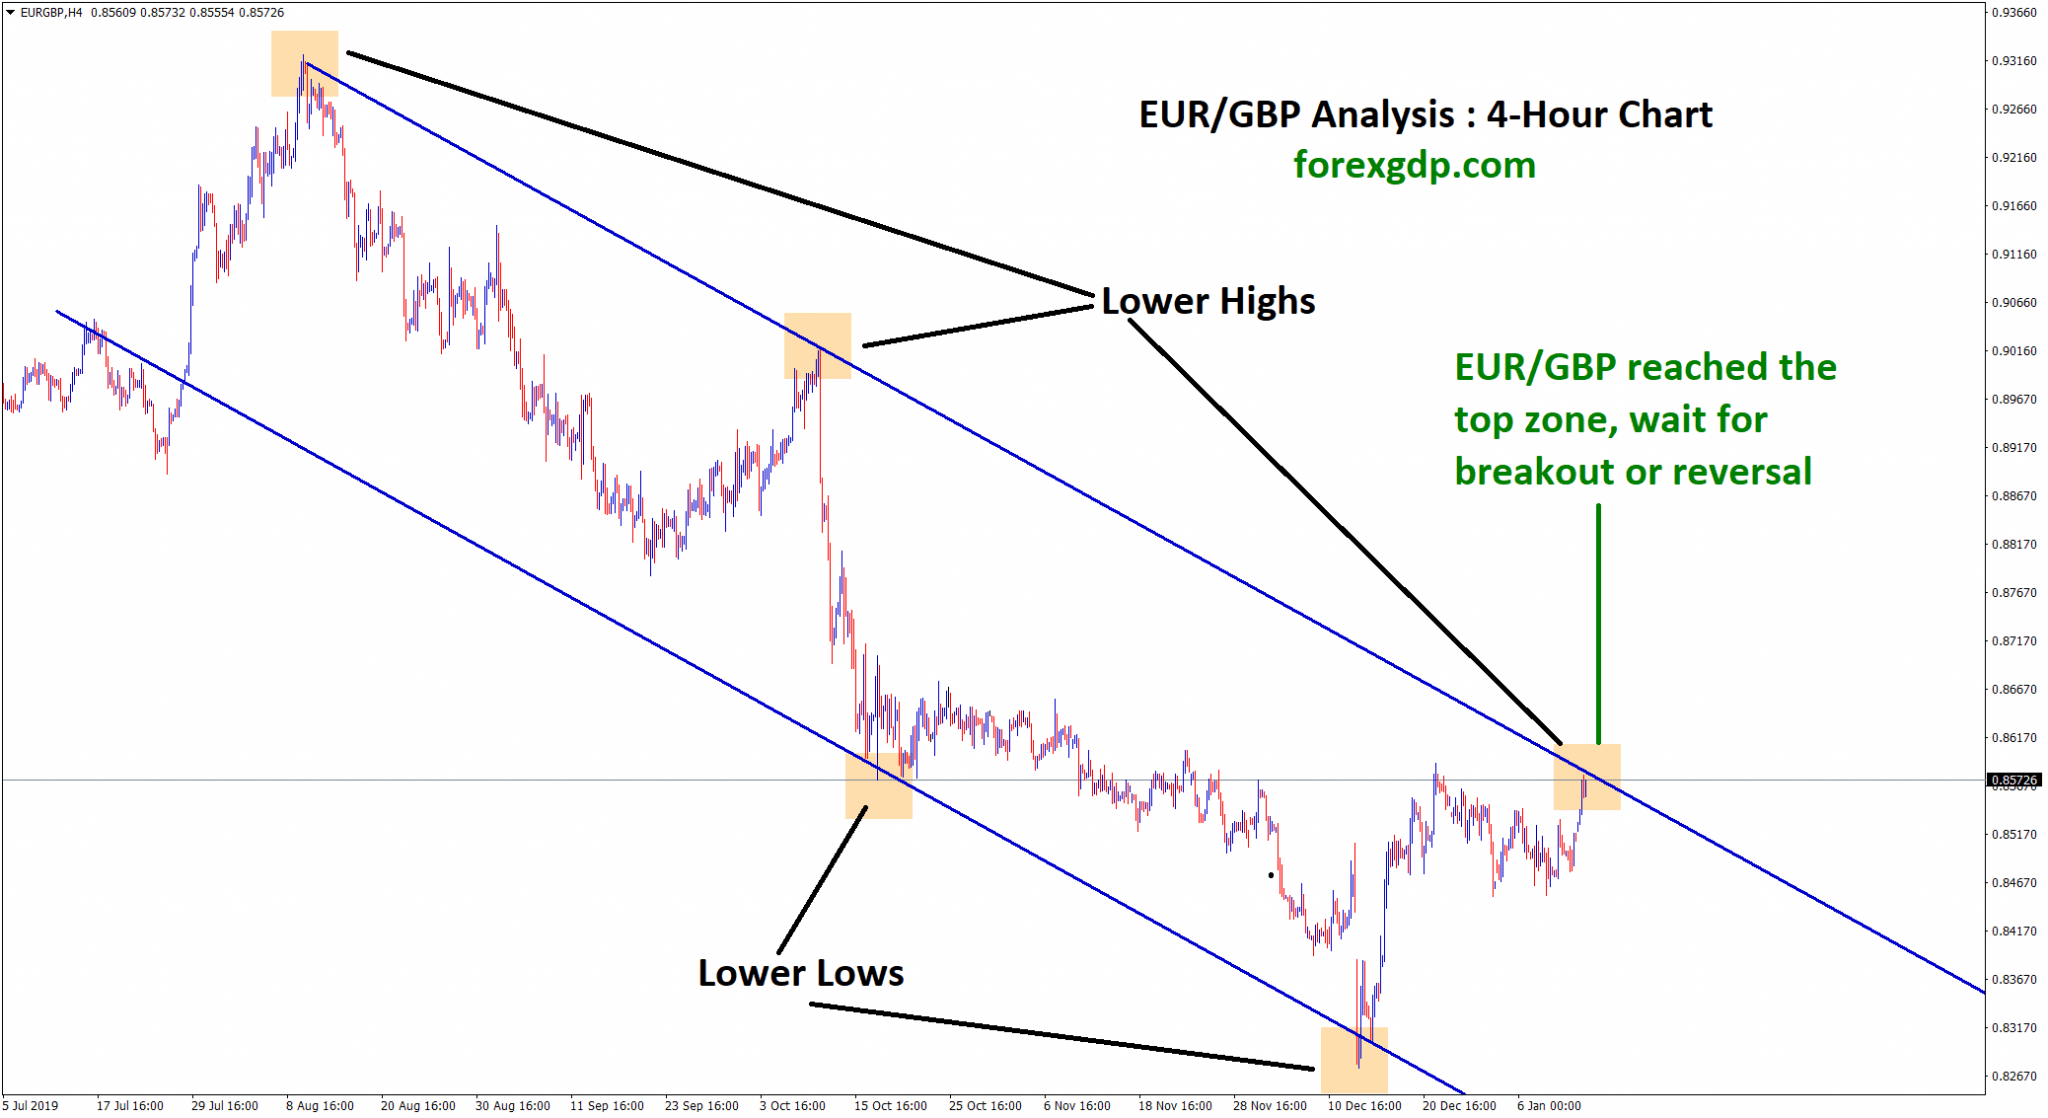 eur gbp waiting for breakout or reversal